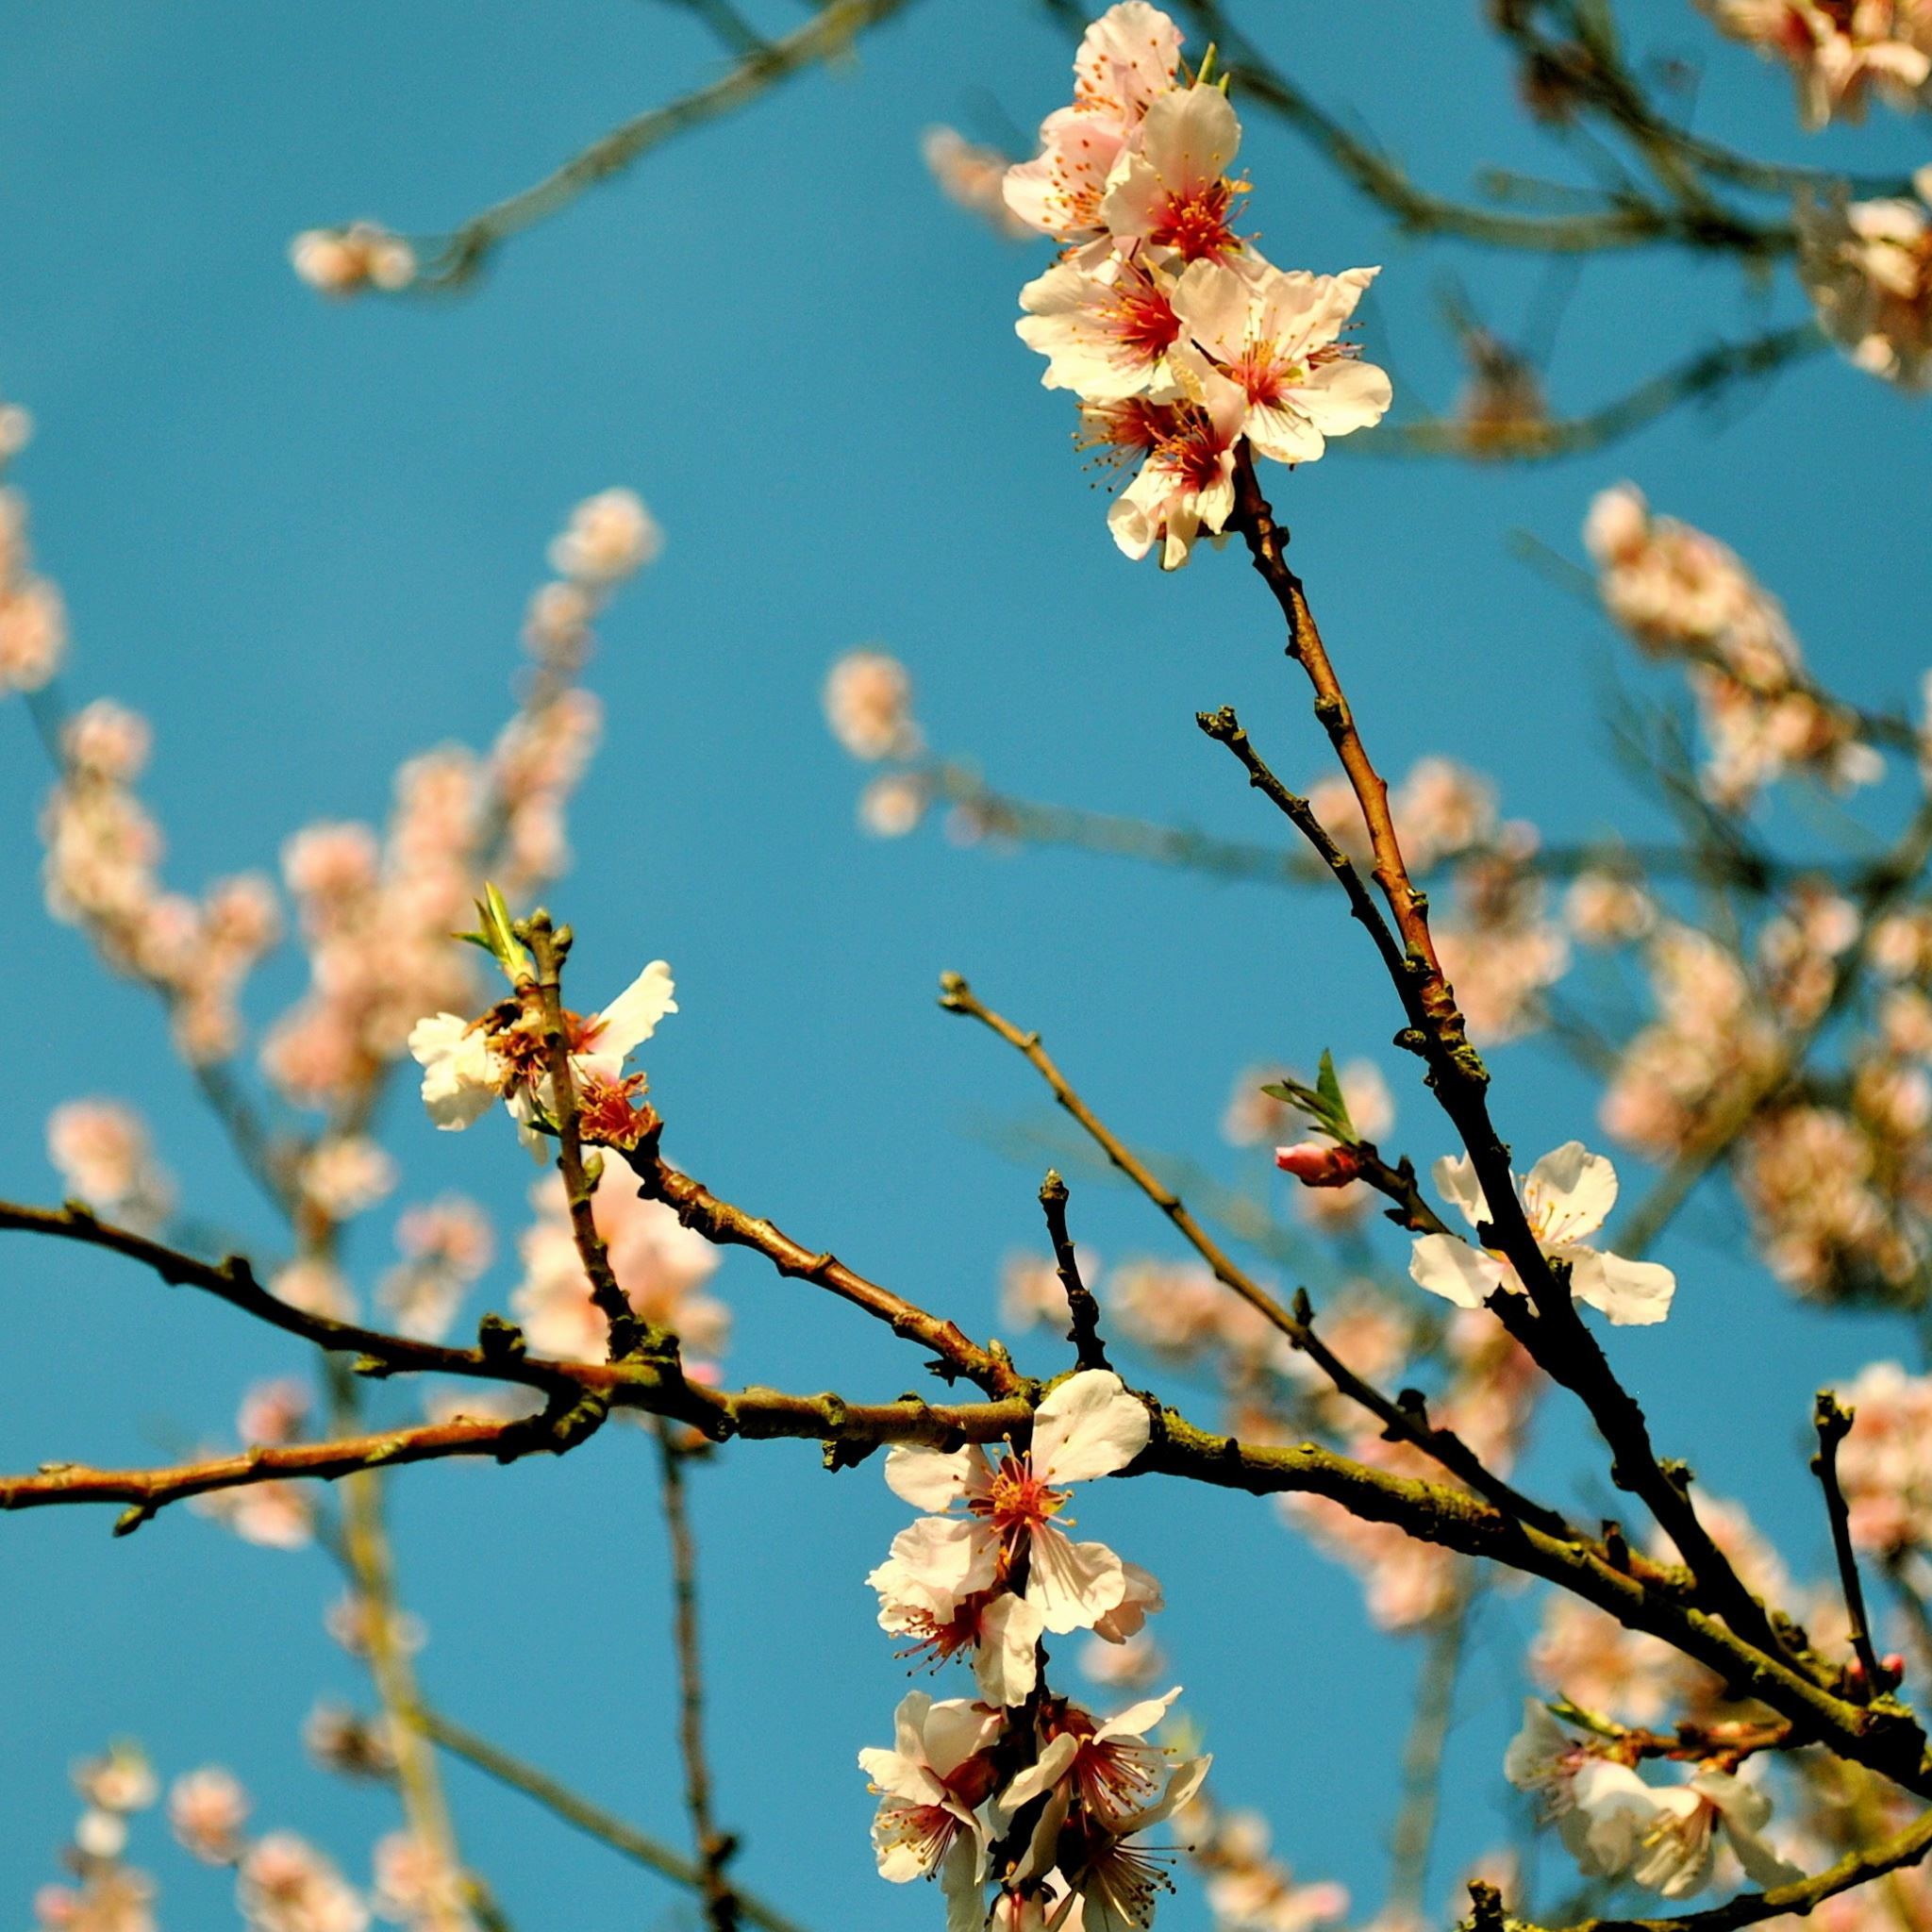 Cool Spring Wallpapers: Peach Flowers Spring IPad Air Wallpapers Free Download